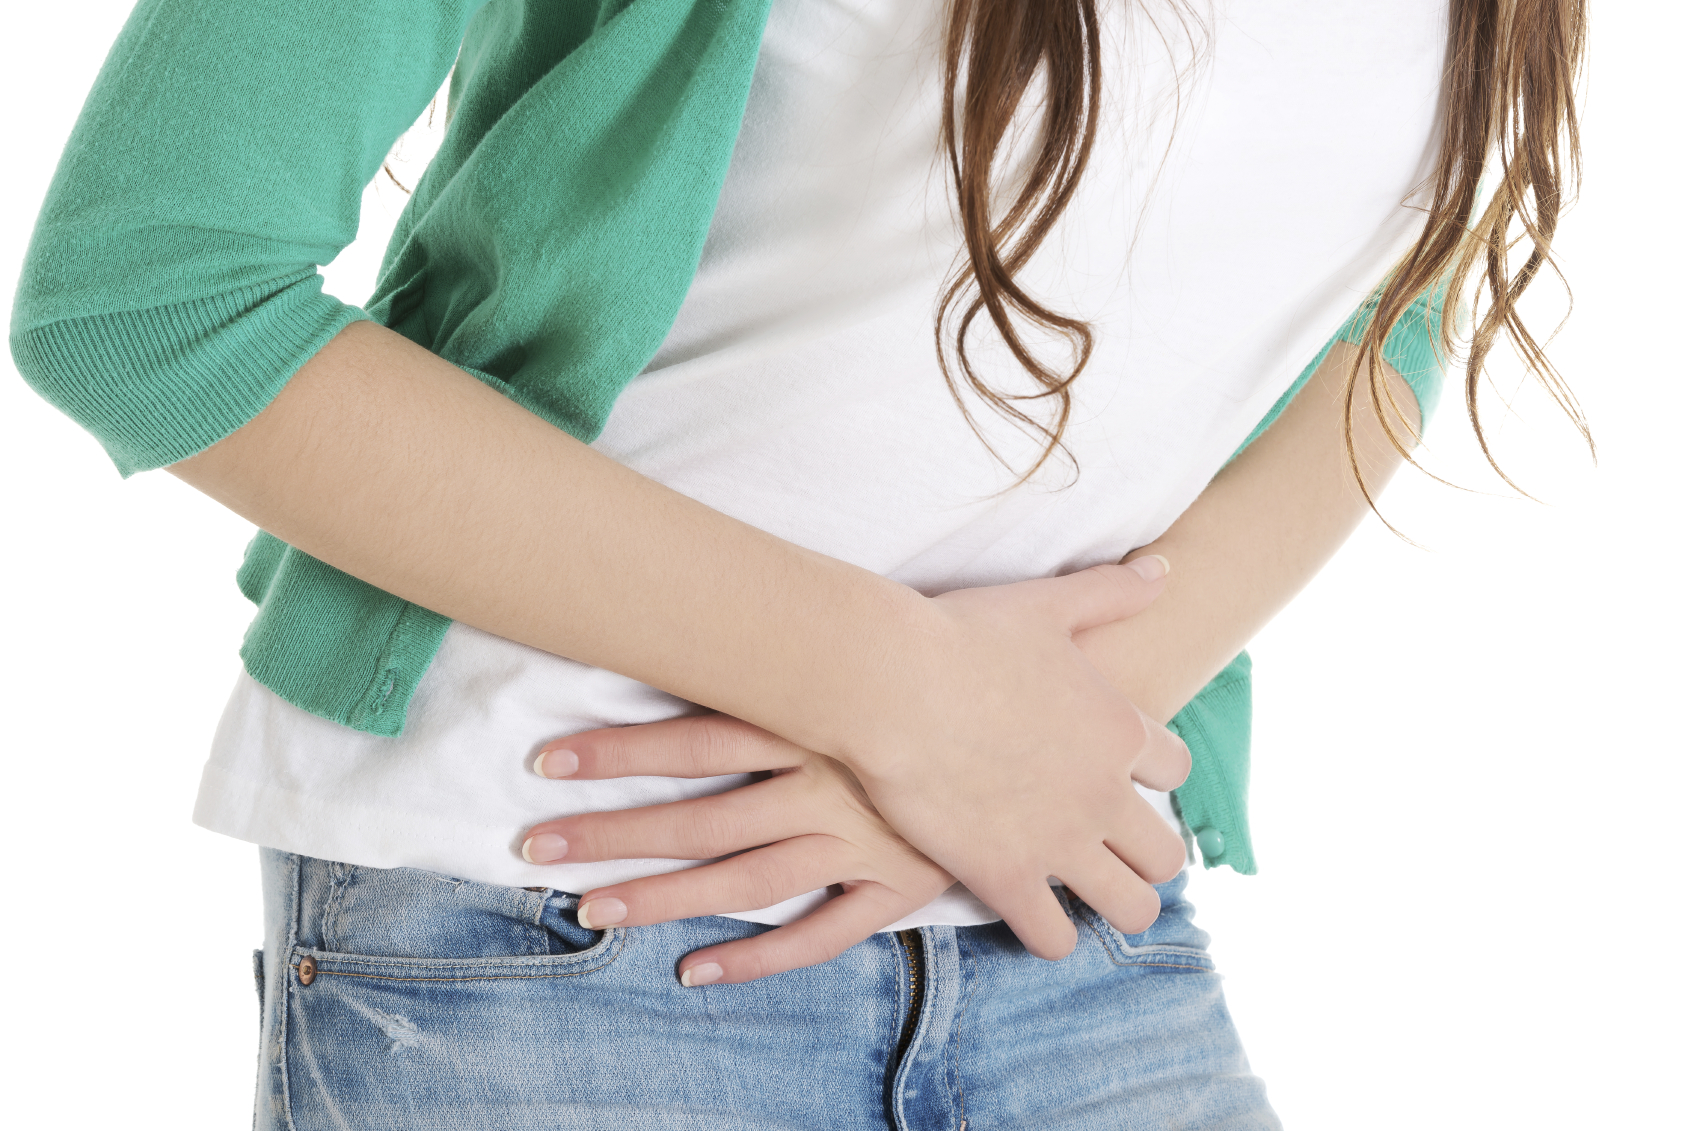 Cramps brought on by irritable bowel syndrome